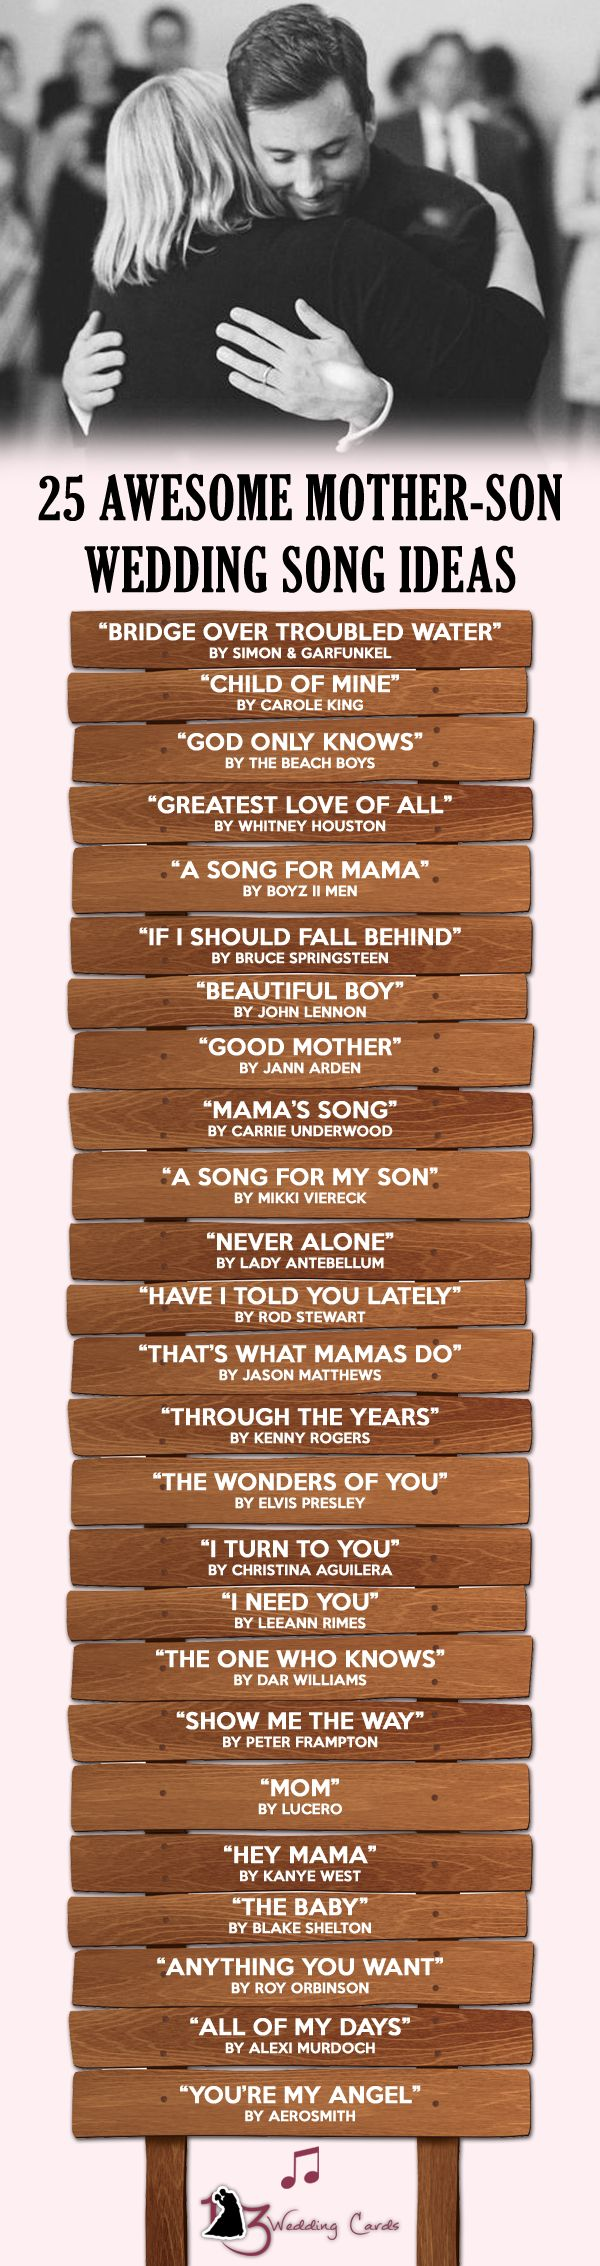 If you want to make your mother feel super special on your wedding then here is a list of 25 awesome mother son wedding songs that will make your mother go 'awe' with admiration.